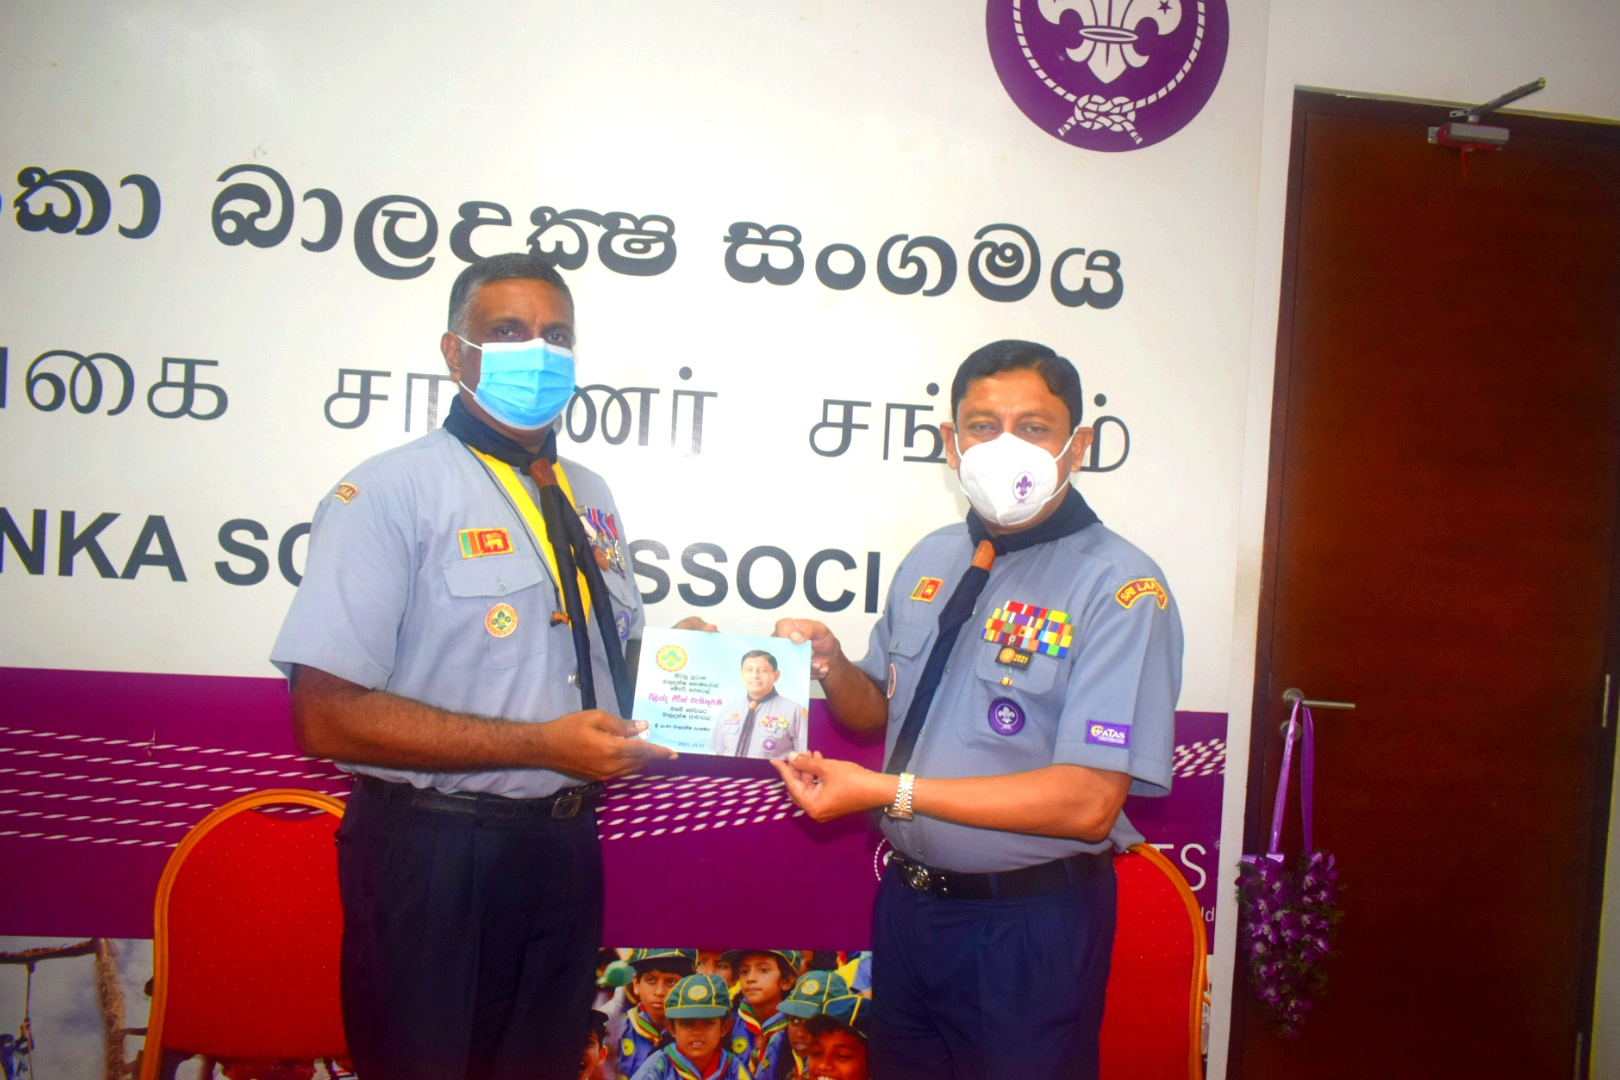 21st Chief Commissioner of the Sri Lanka Scout Association assumes duties